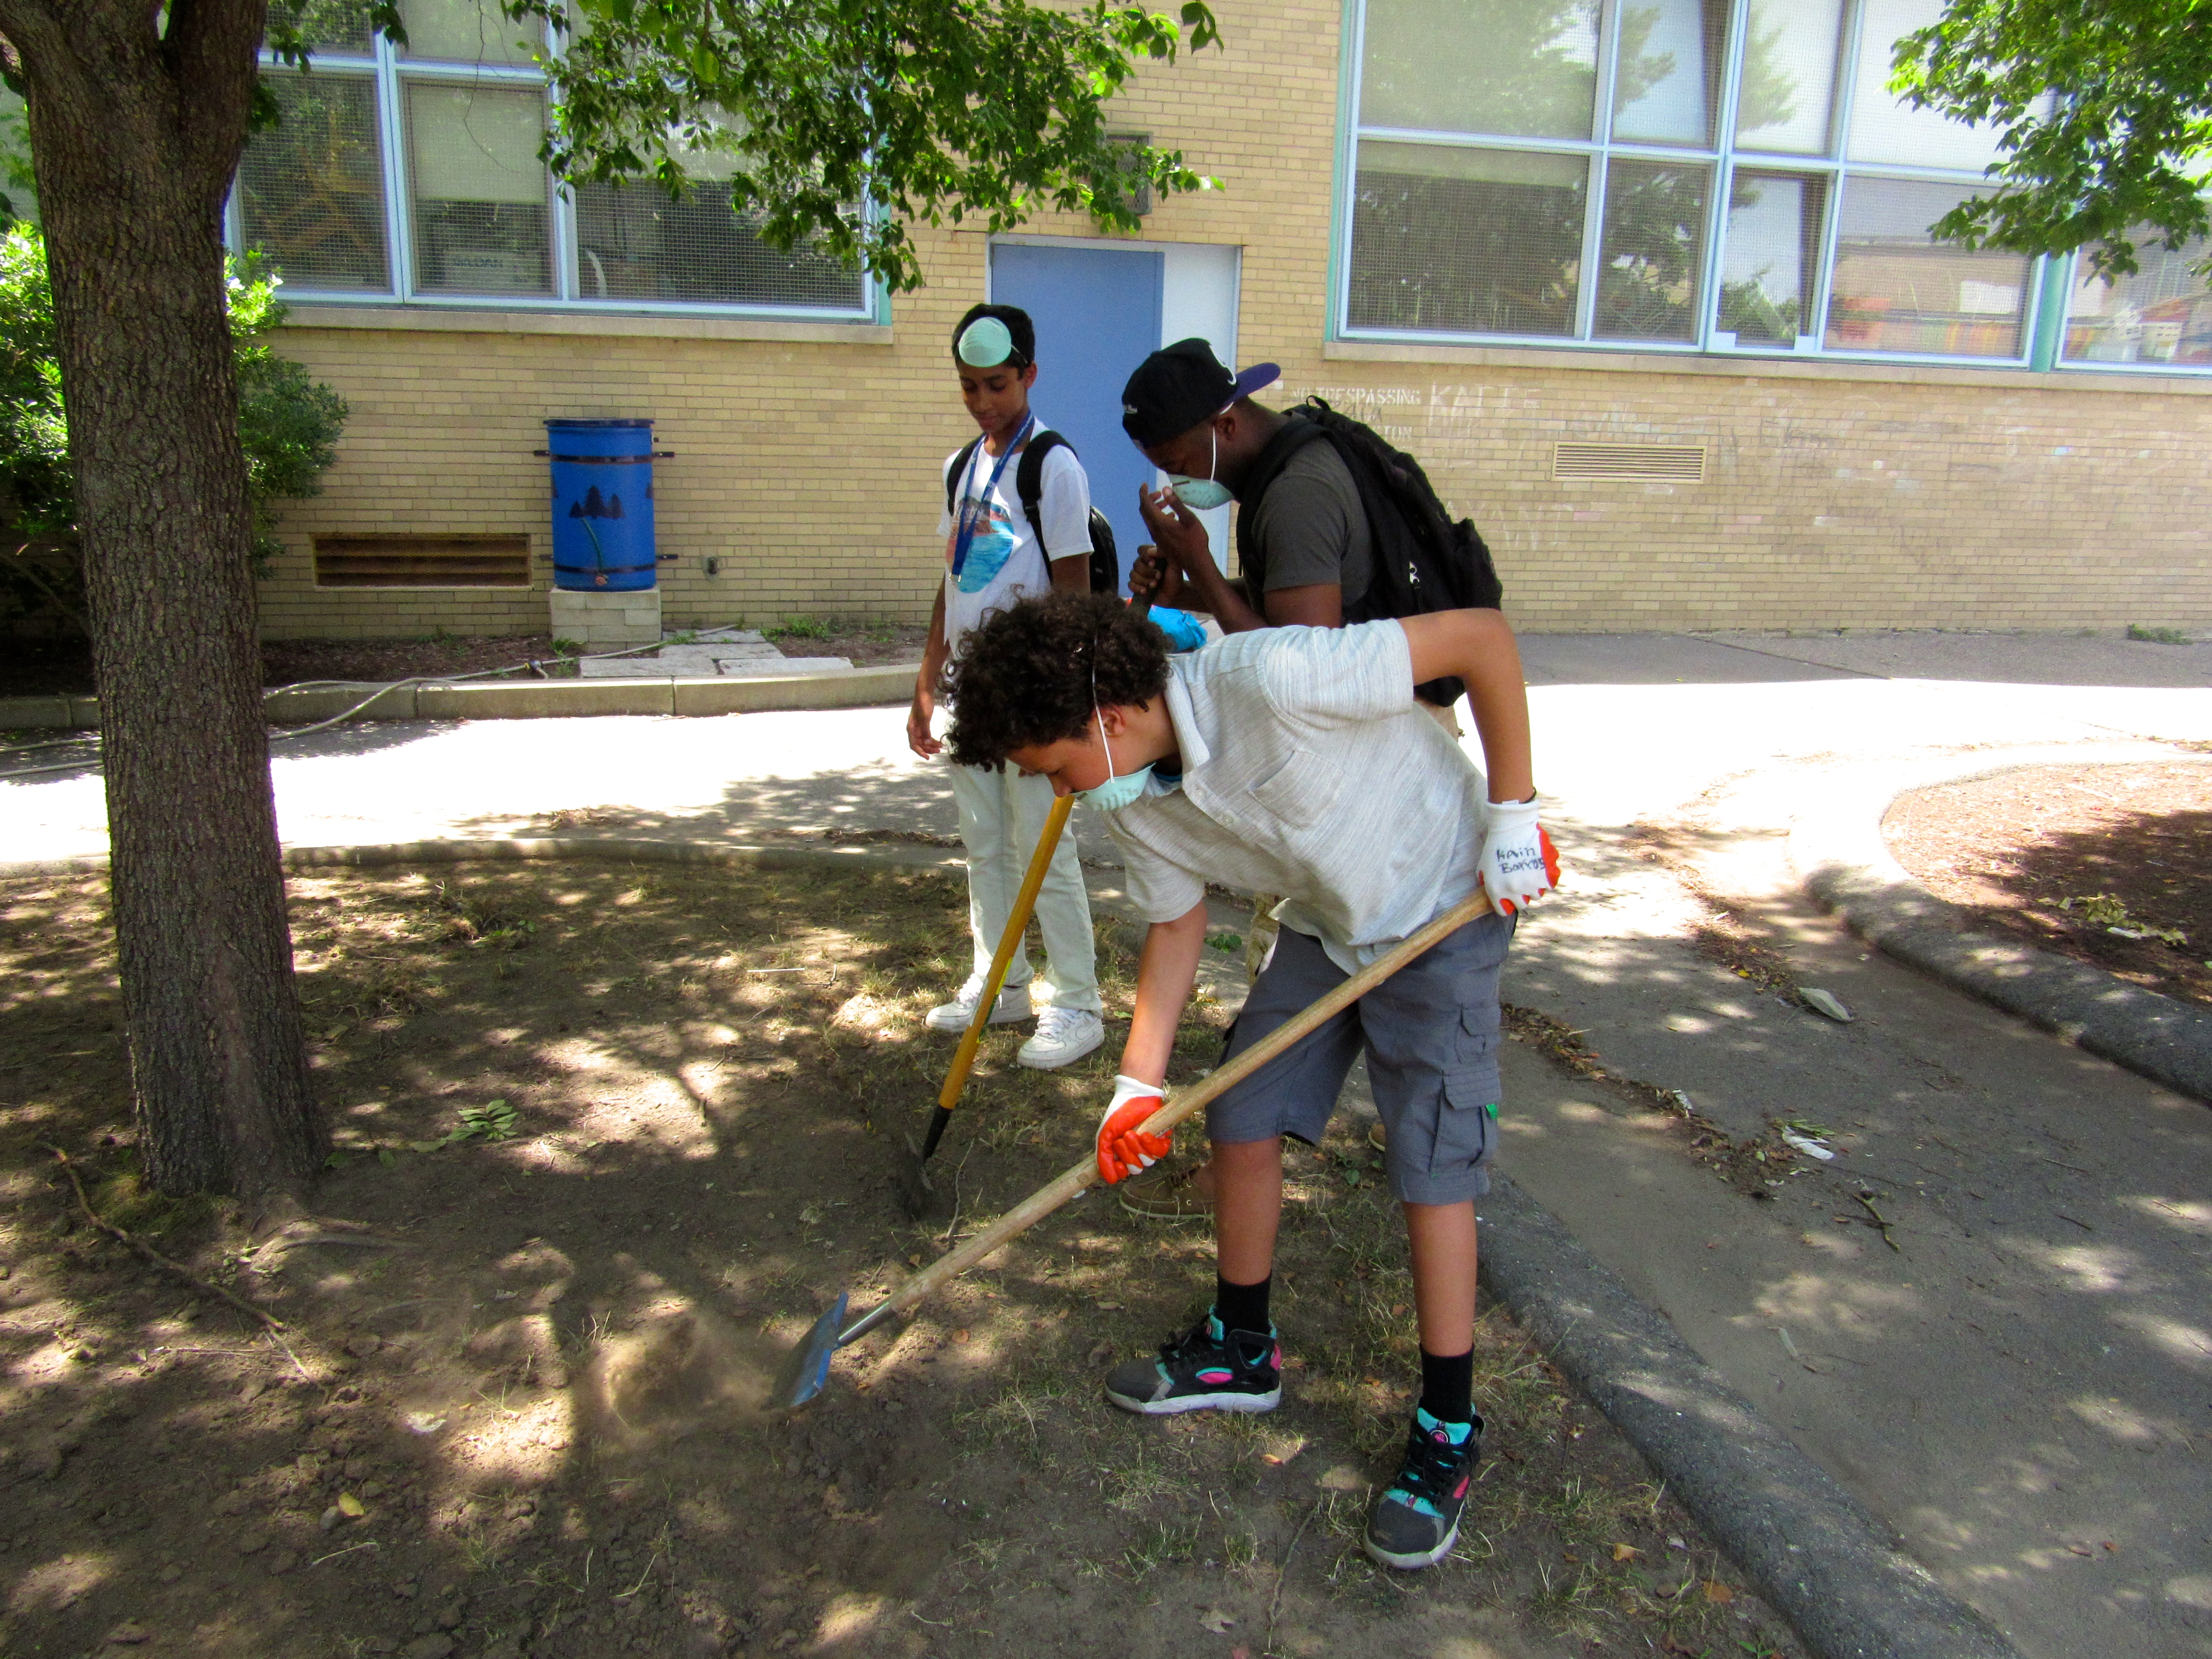 Students helped out digging dirt.